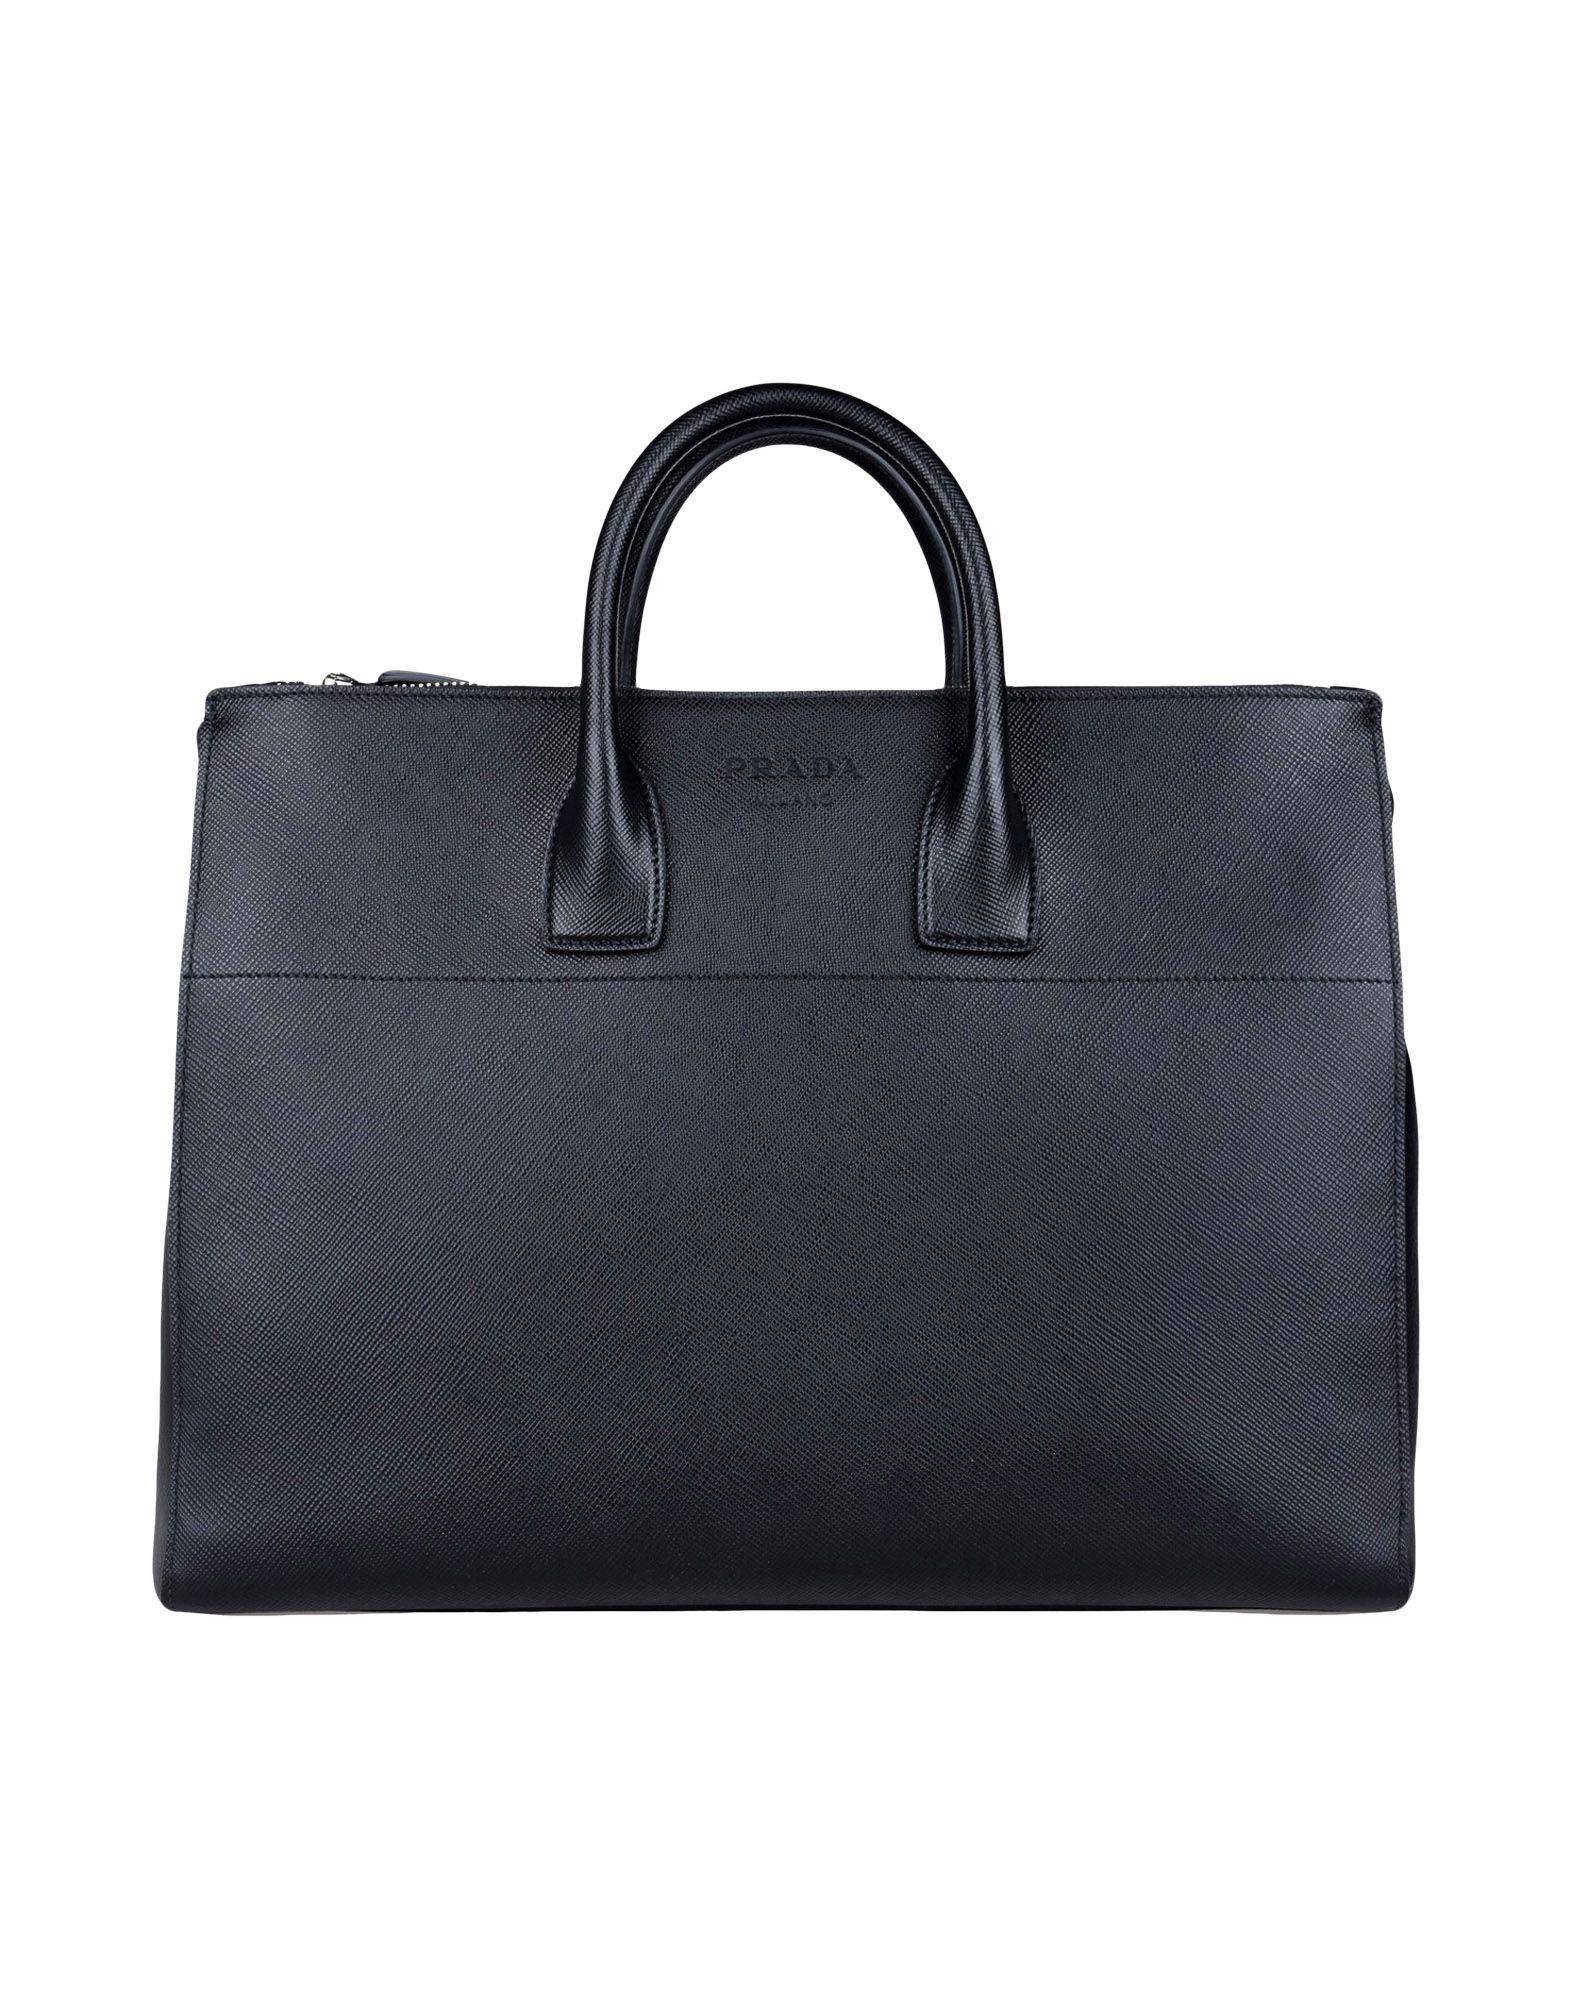 Prada Work Bag In Black